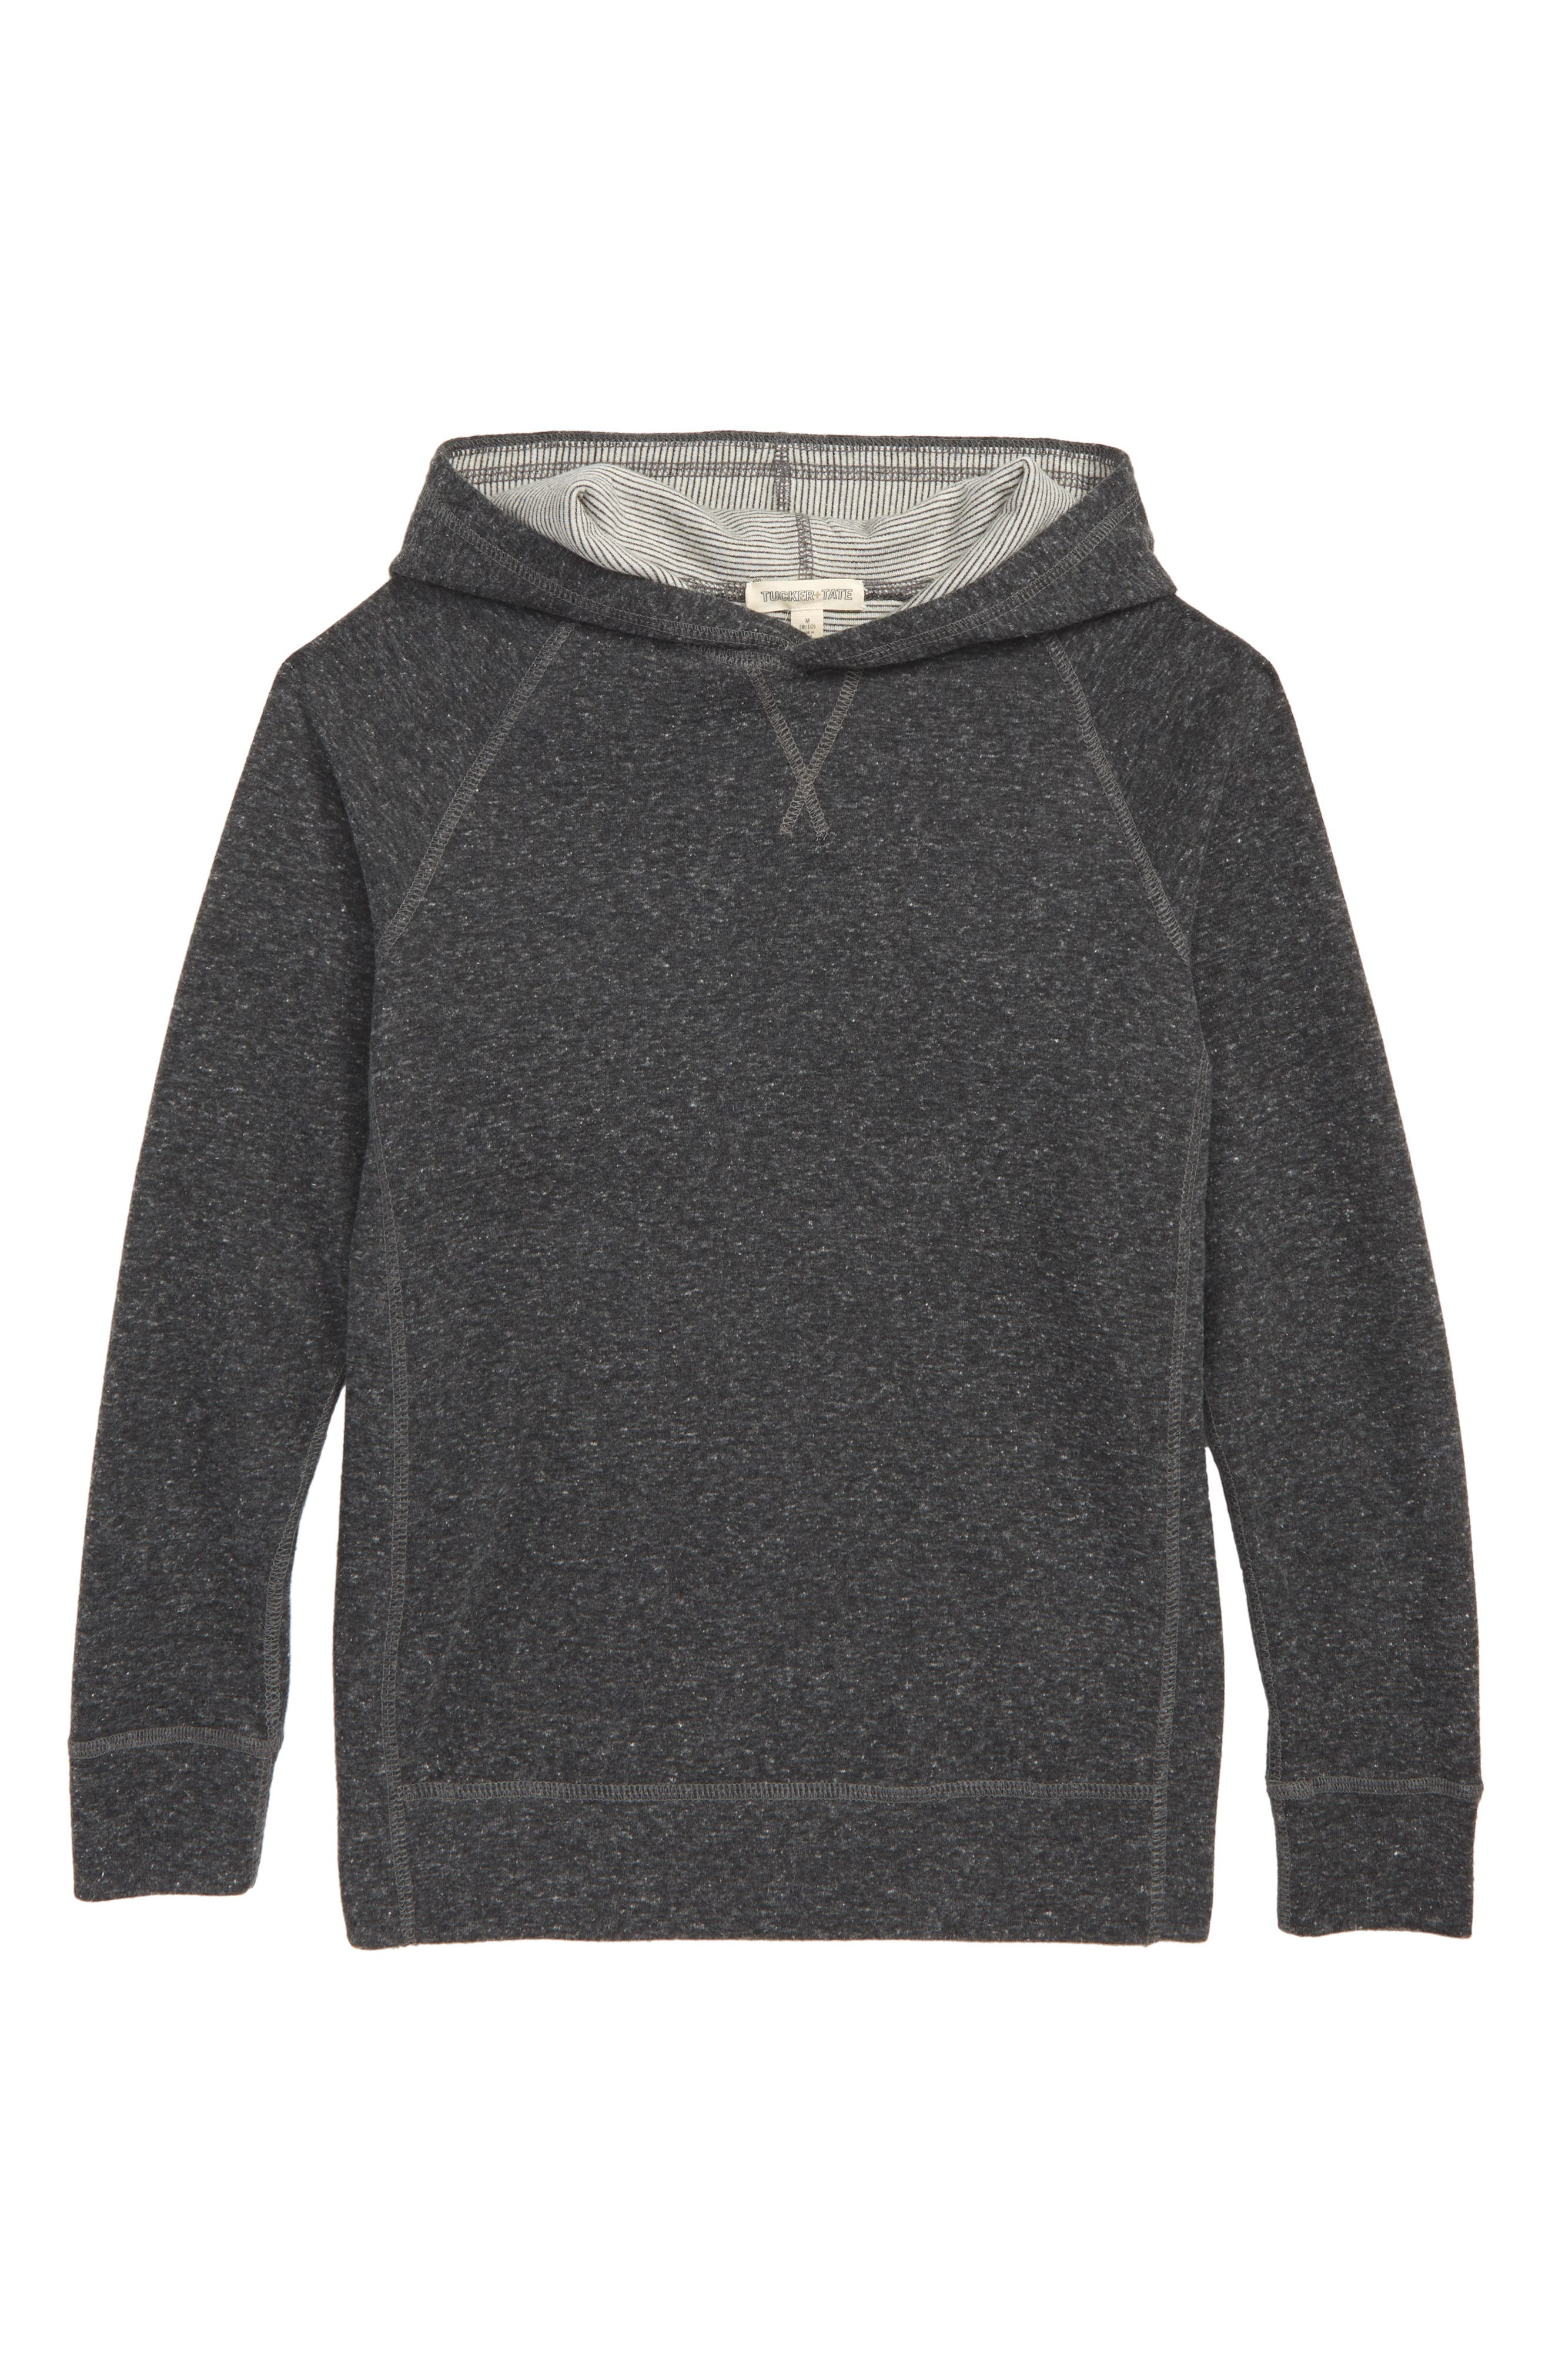 TUCKER + TATE Double Knit Hoodie, Main, color, GREY CHARCOAL HEATHER